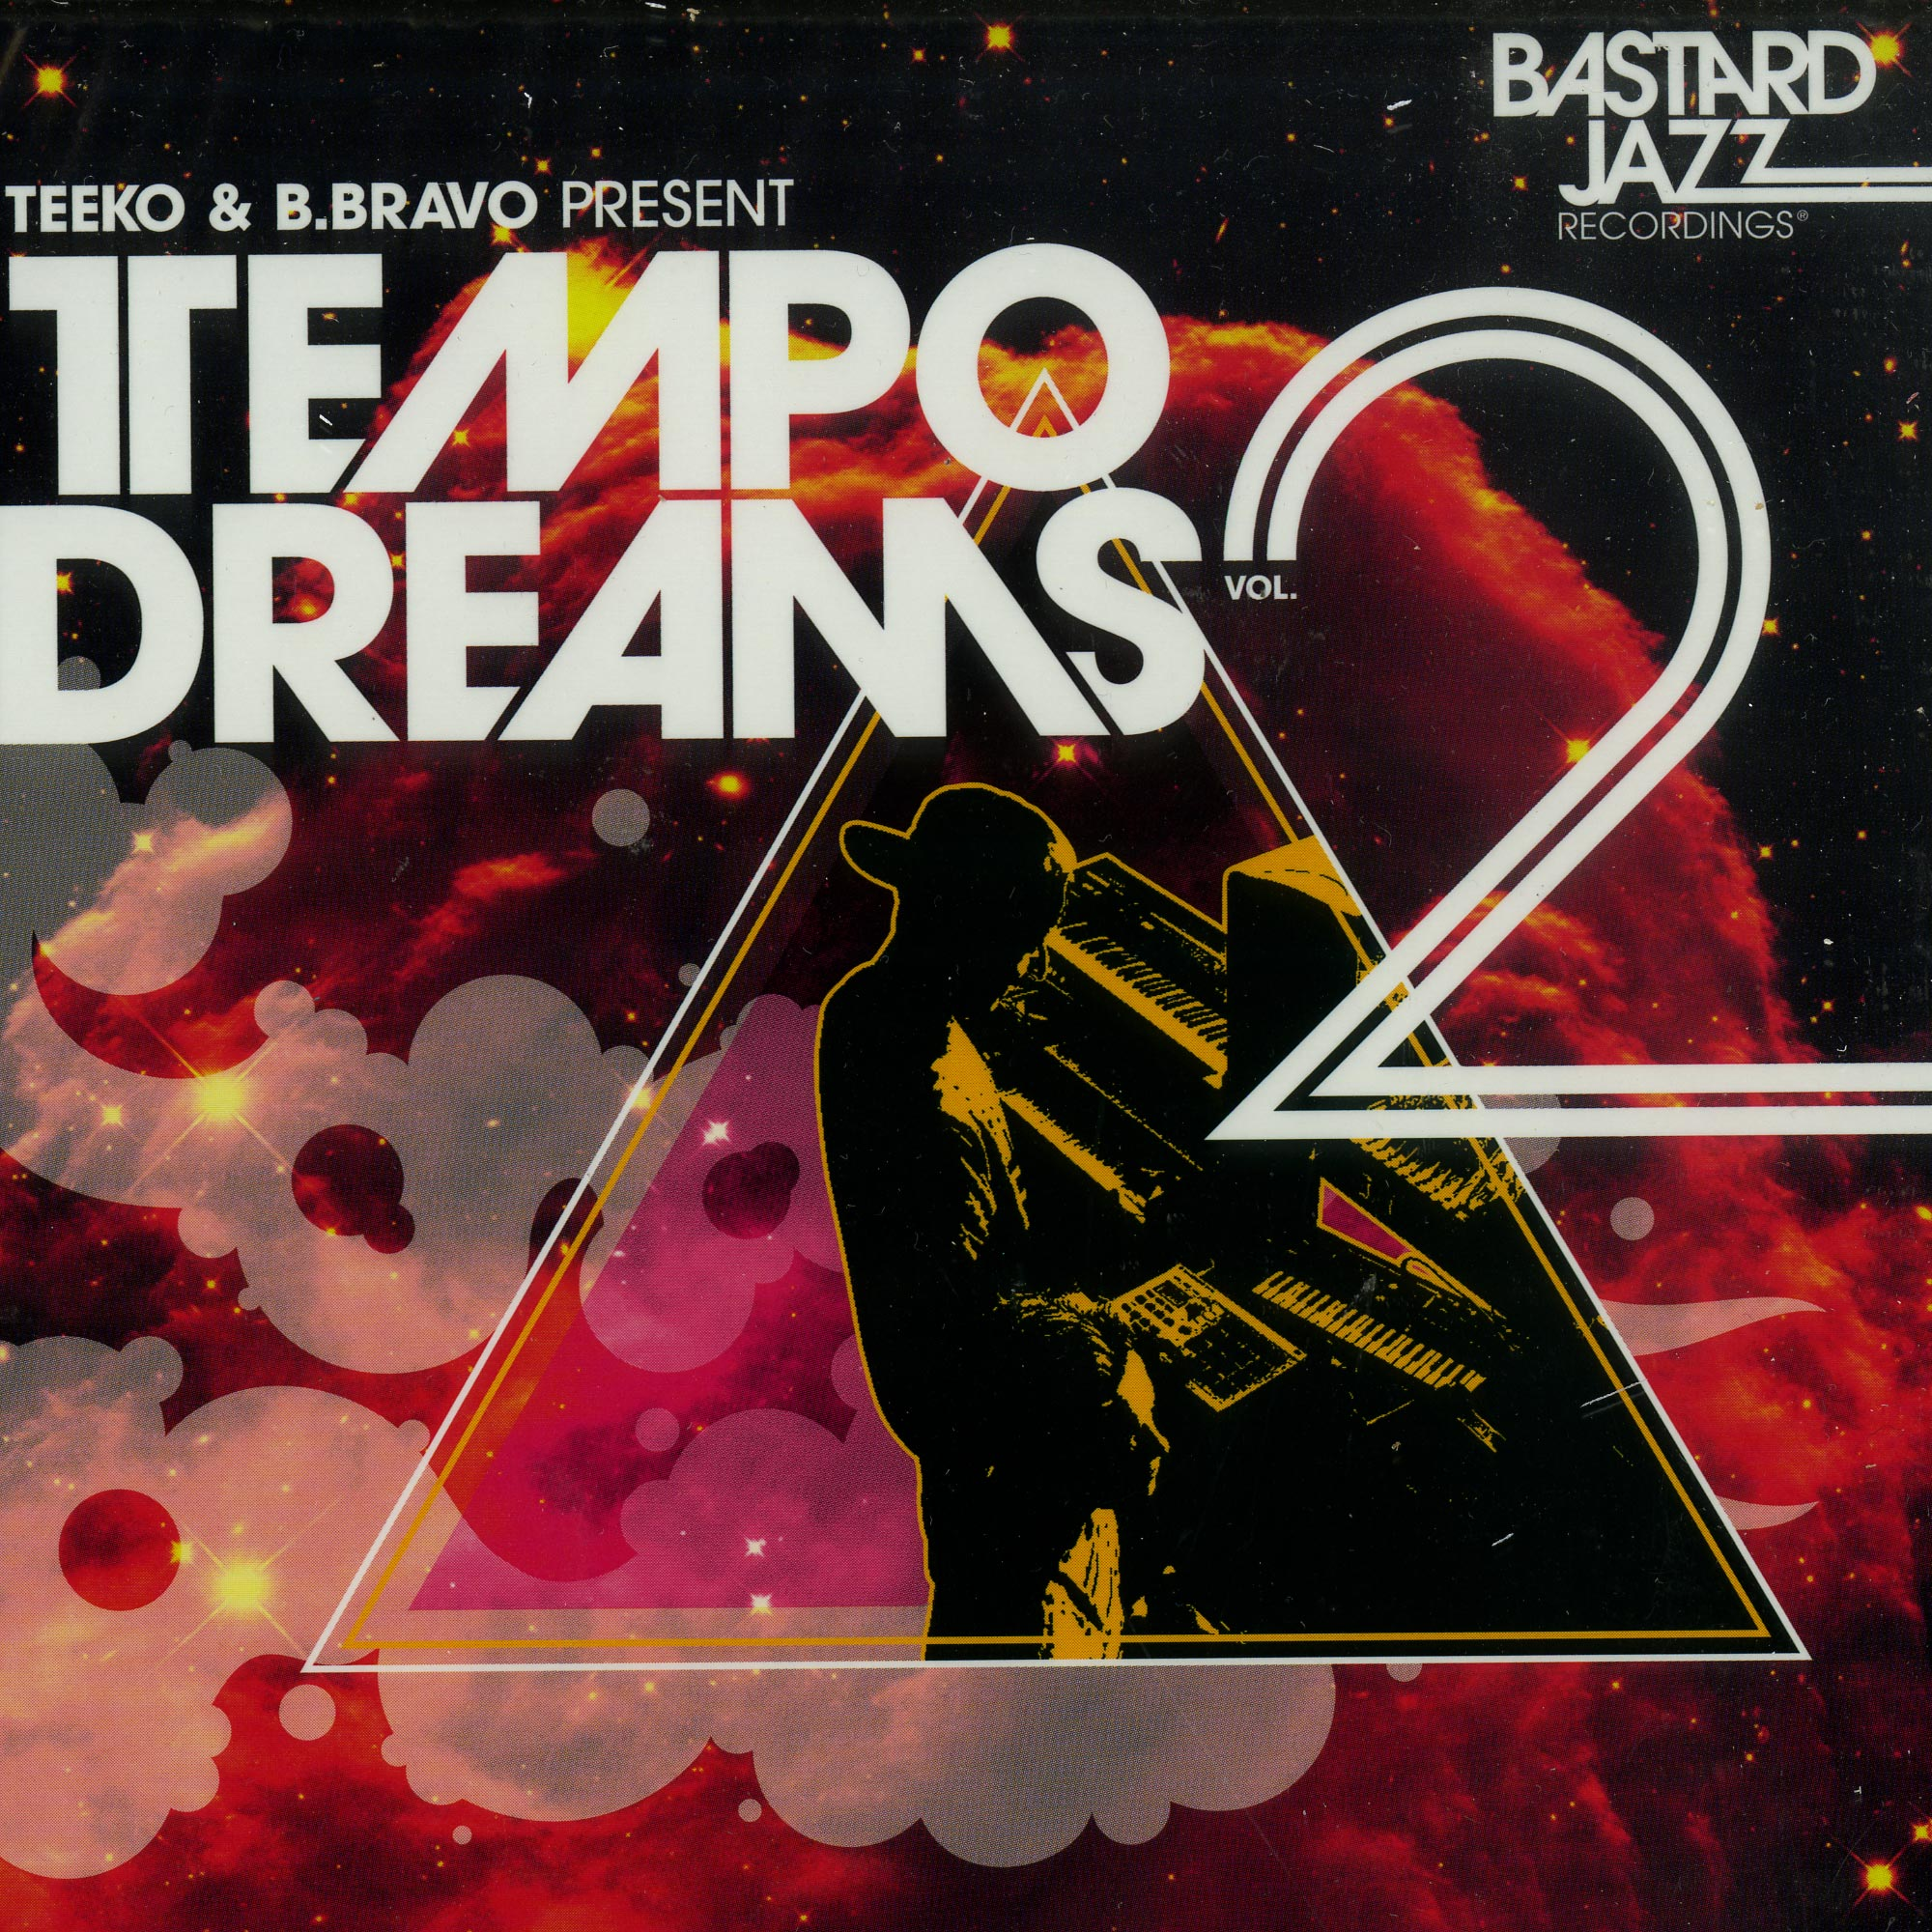 Teeko and B.Bravo pres - TEMPO DREAMS VOL.2